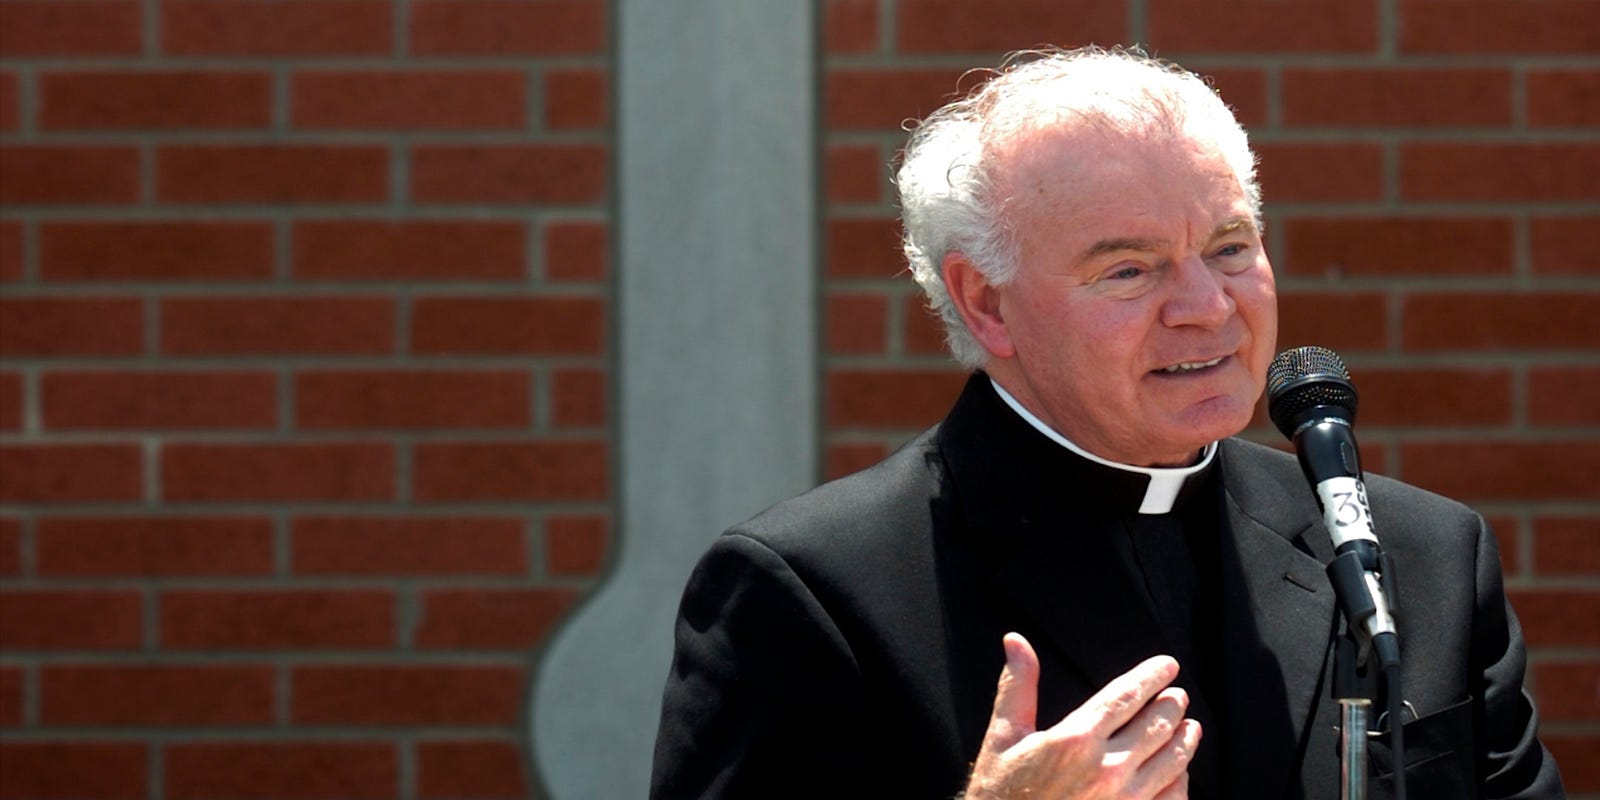 Accused former Kentucky priest reinstated by Vatican is barred from schools for 5 years